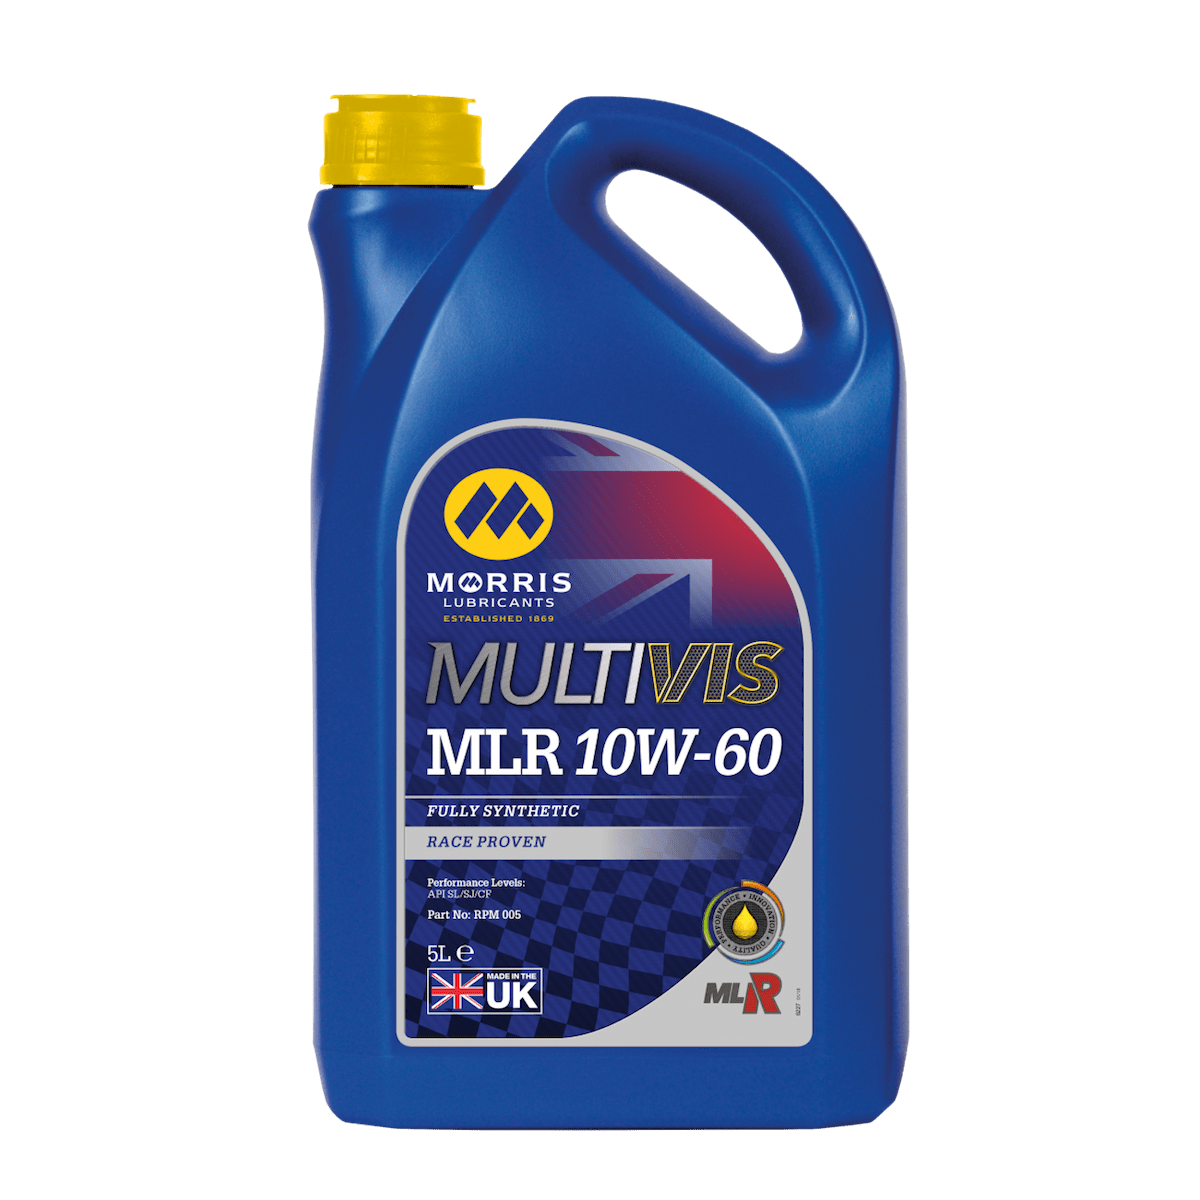 Multivis MLR 10W-60 (Previously X-RPM Competition 10W-60)